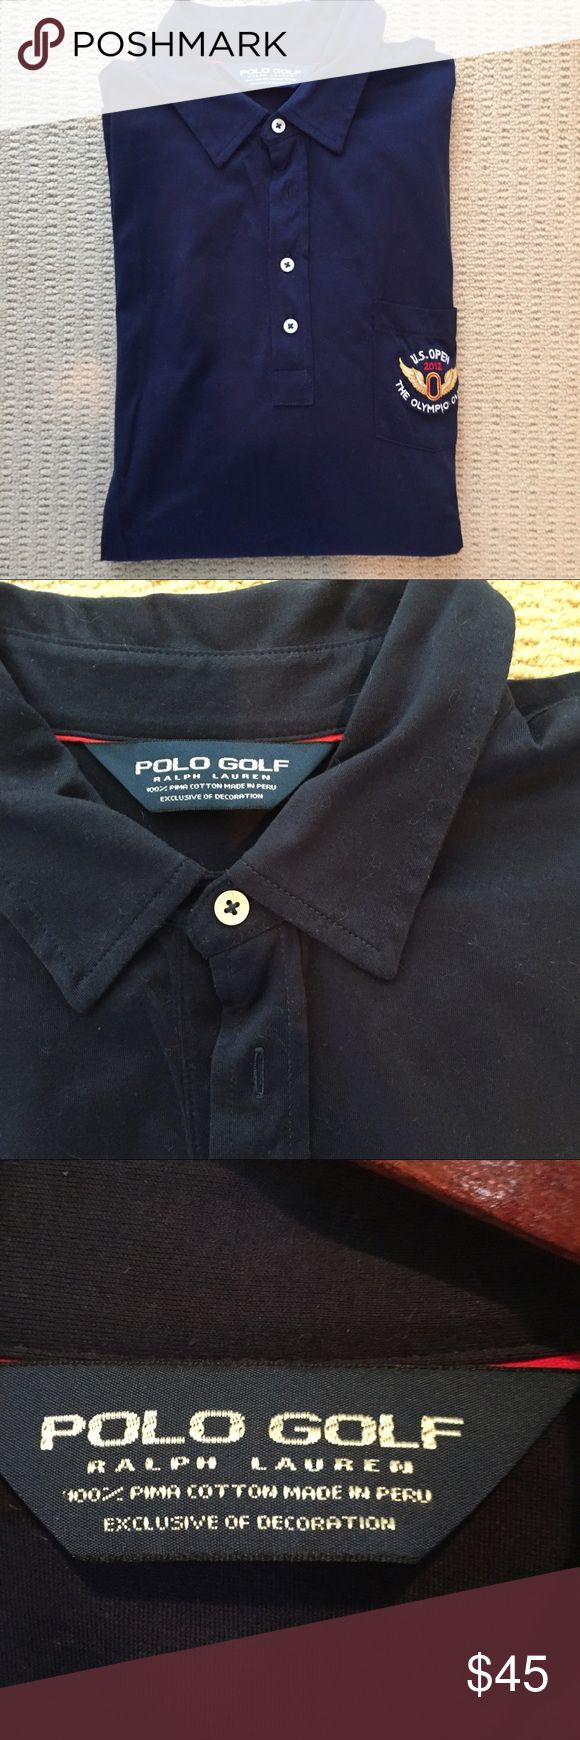 Black Ralph Lauren golf Polo shirt Black 100% cotton Ralph Lauren polo golf shirt in great condition with U.S. Open 2012 Olympic Club logo on pocket and sponsor logos on sleeves Polo by Ralph Lauren Shirts Polos